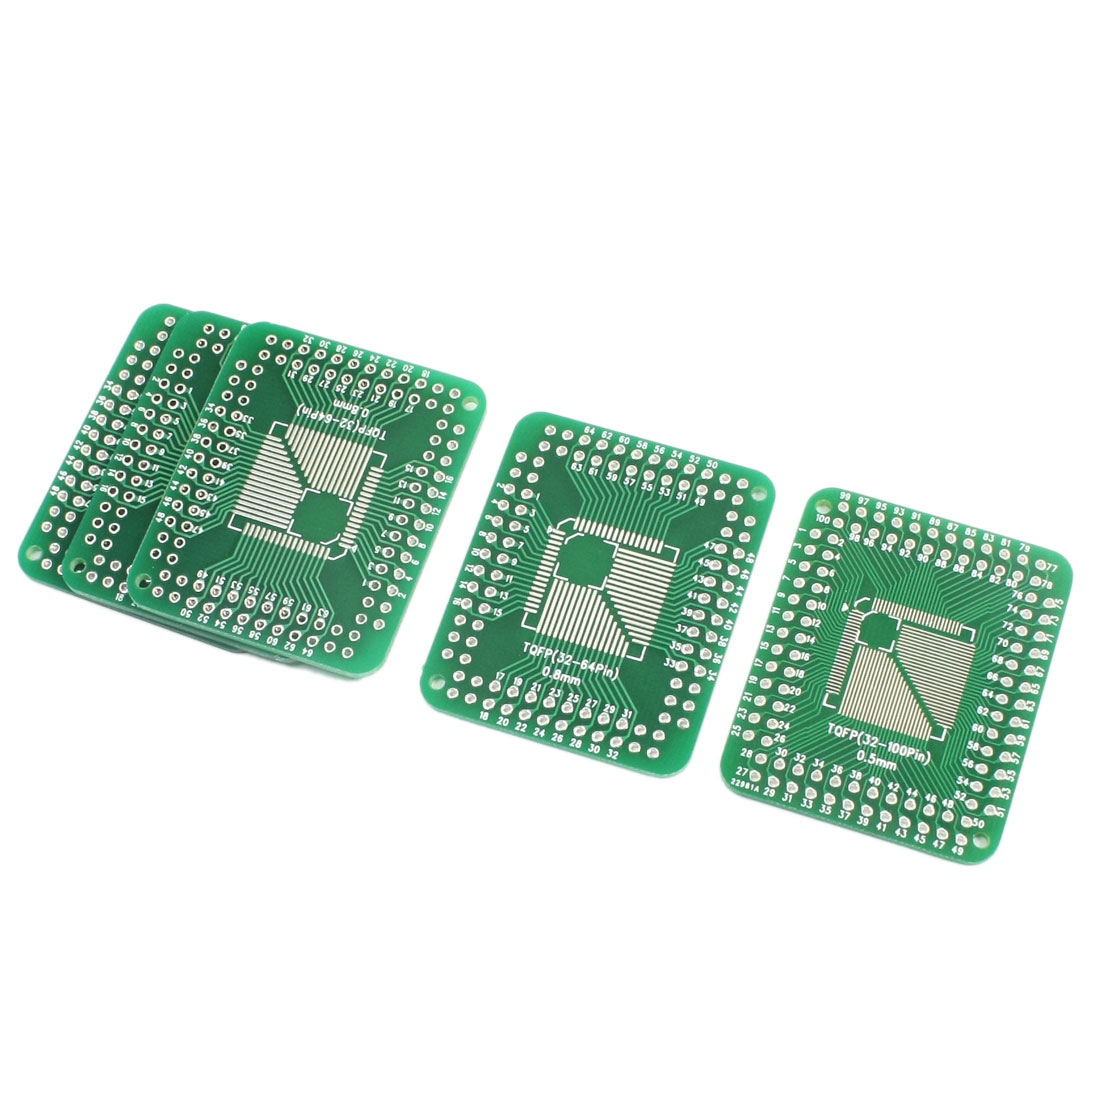 5 Pcs SMT TQFP/TQFP 0.5mm to 0.8mm Pitch TQFP Dual Sides DIP Mount IC PCB Adapter Converter Plate Board